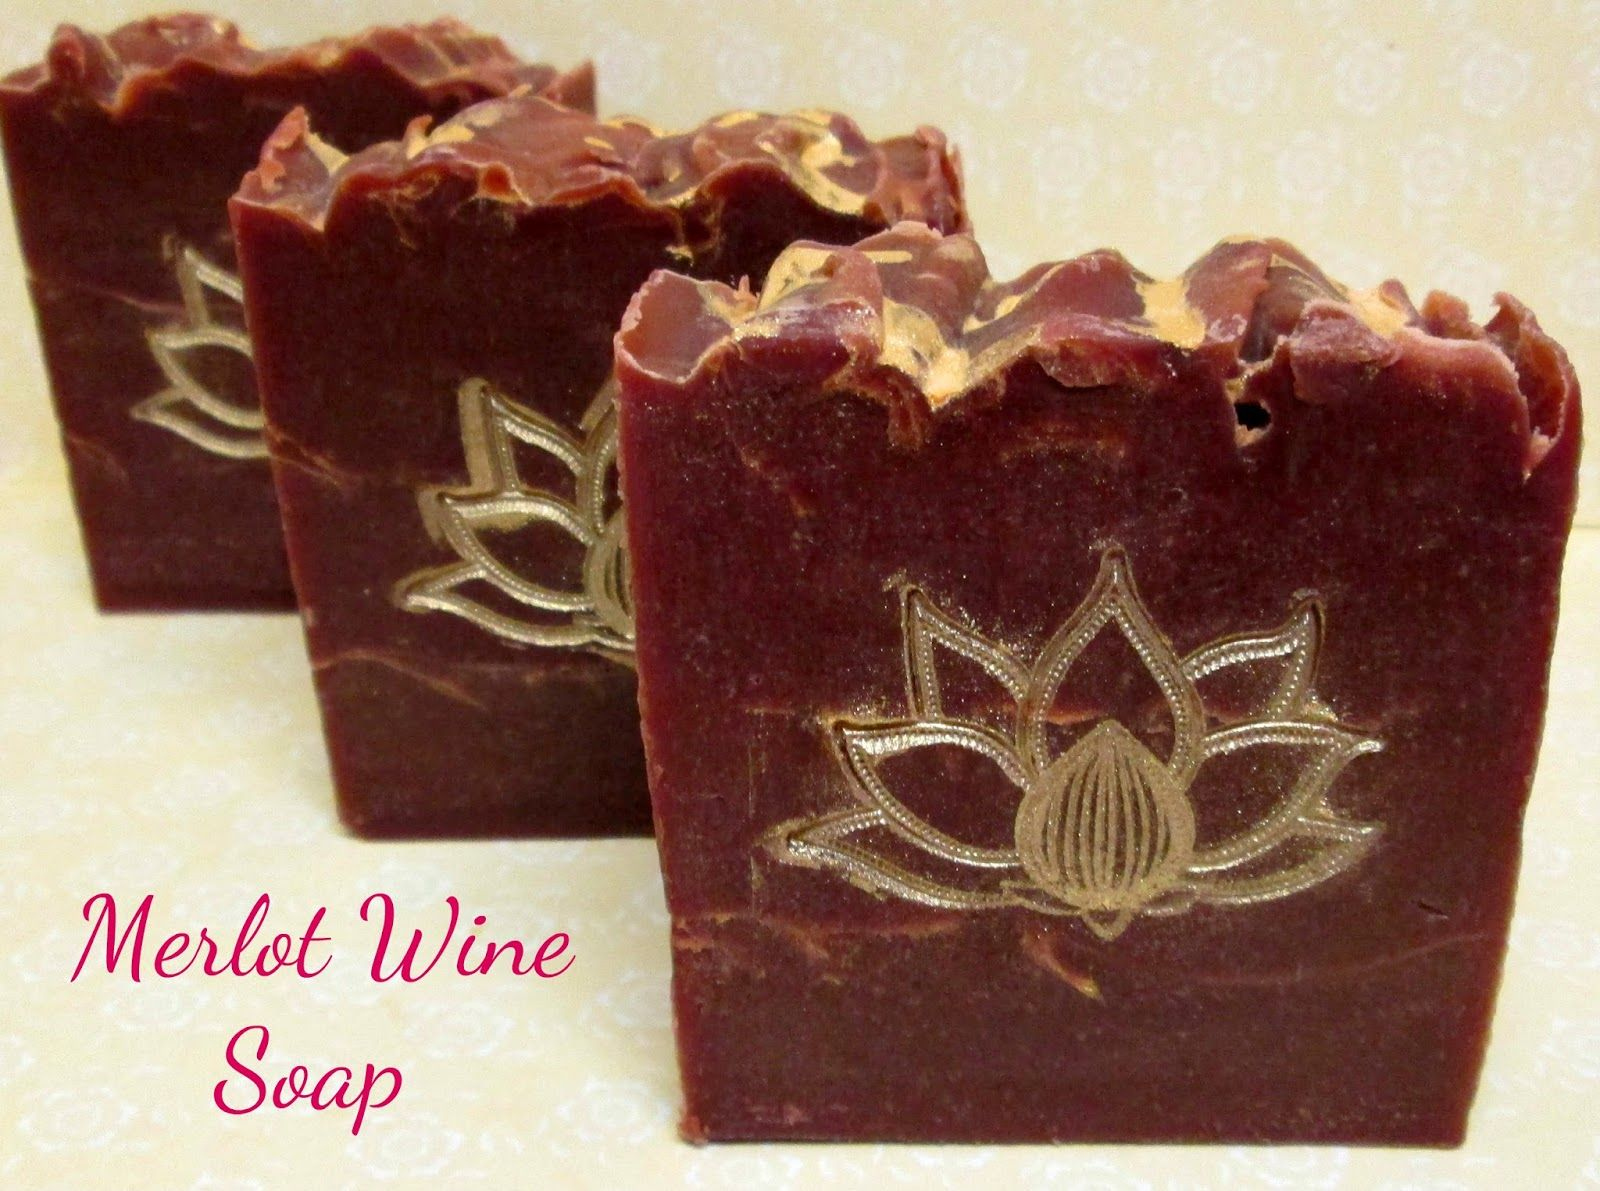 I M Finally Getting Around To Something That I Ve Been Meaning To Try For A While Now Wine Soap Making Wine Soap Is Wine Soap Recipe Wine Soaps Soap Recipes